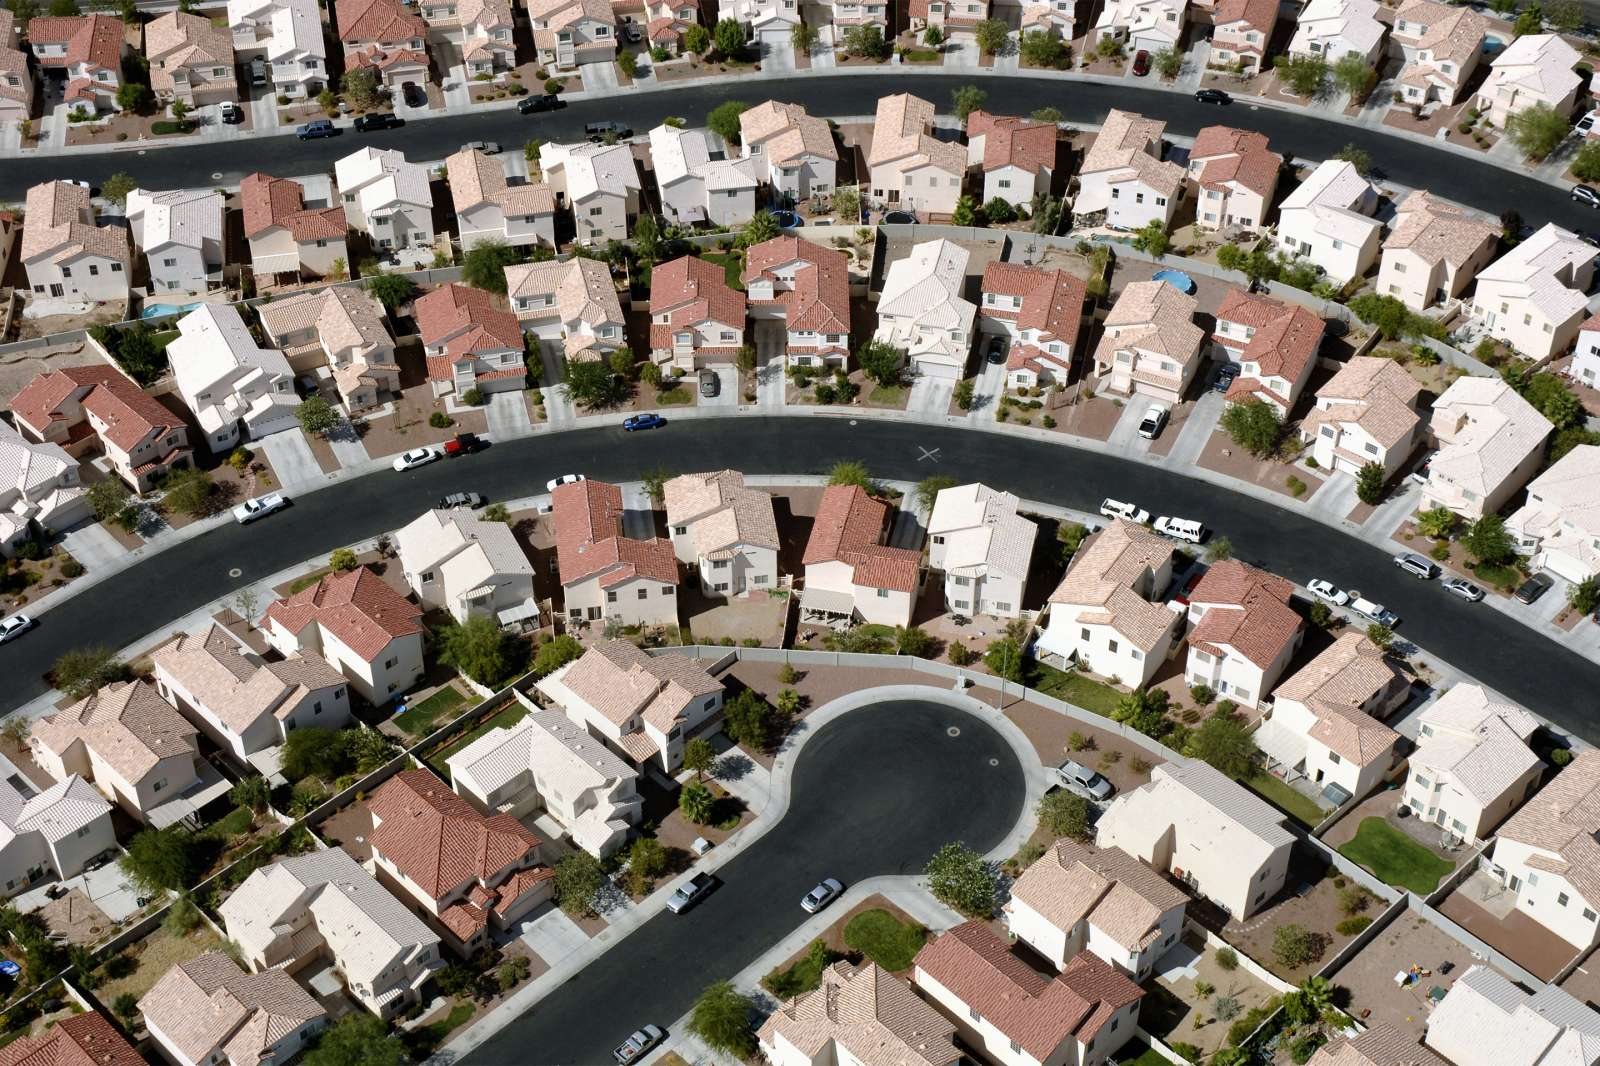 How Long Could Home Prices Take To Recover?